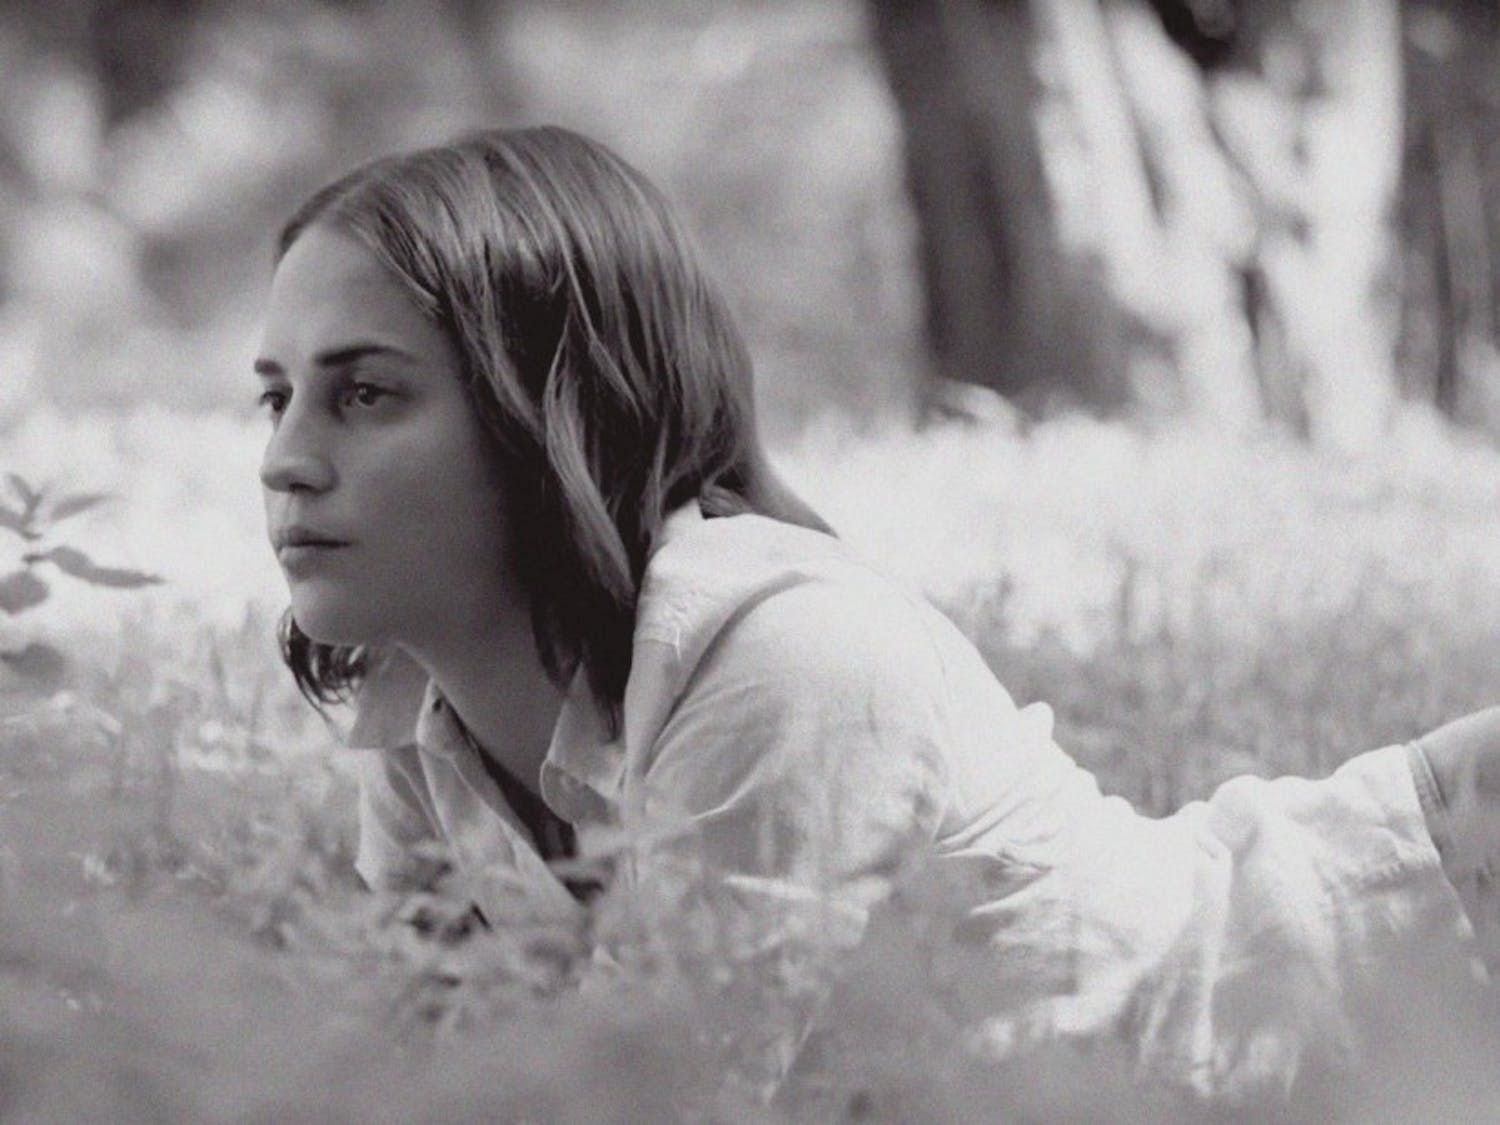 The National collaborated with indie film director Mike Mills to produce a short film starring Alicia Vikander to accompany the album.